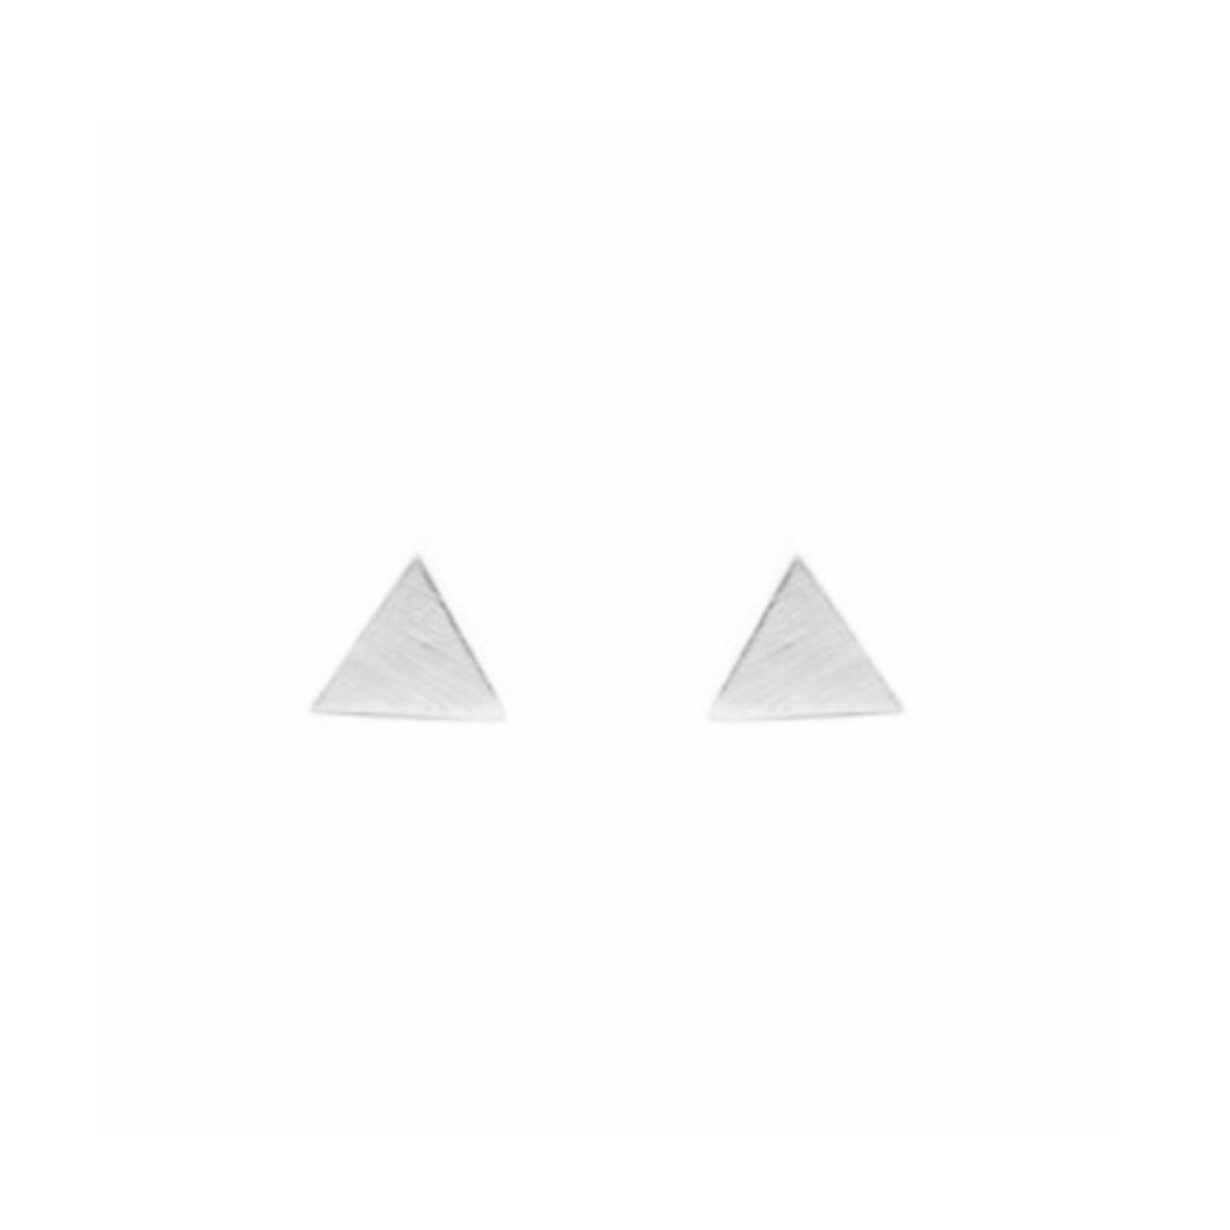 BRUSHED TRIANGLE EARRINGS (SILVER), [product-type] - Minimalist Jewellery